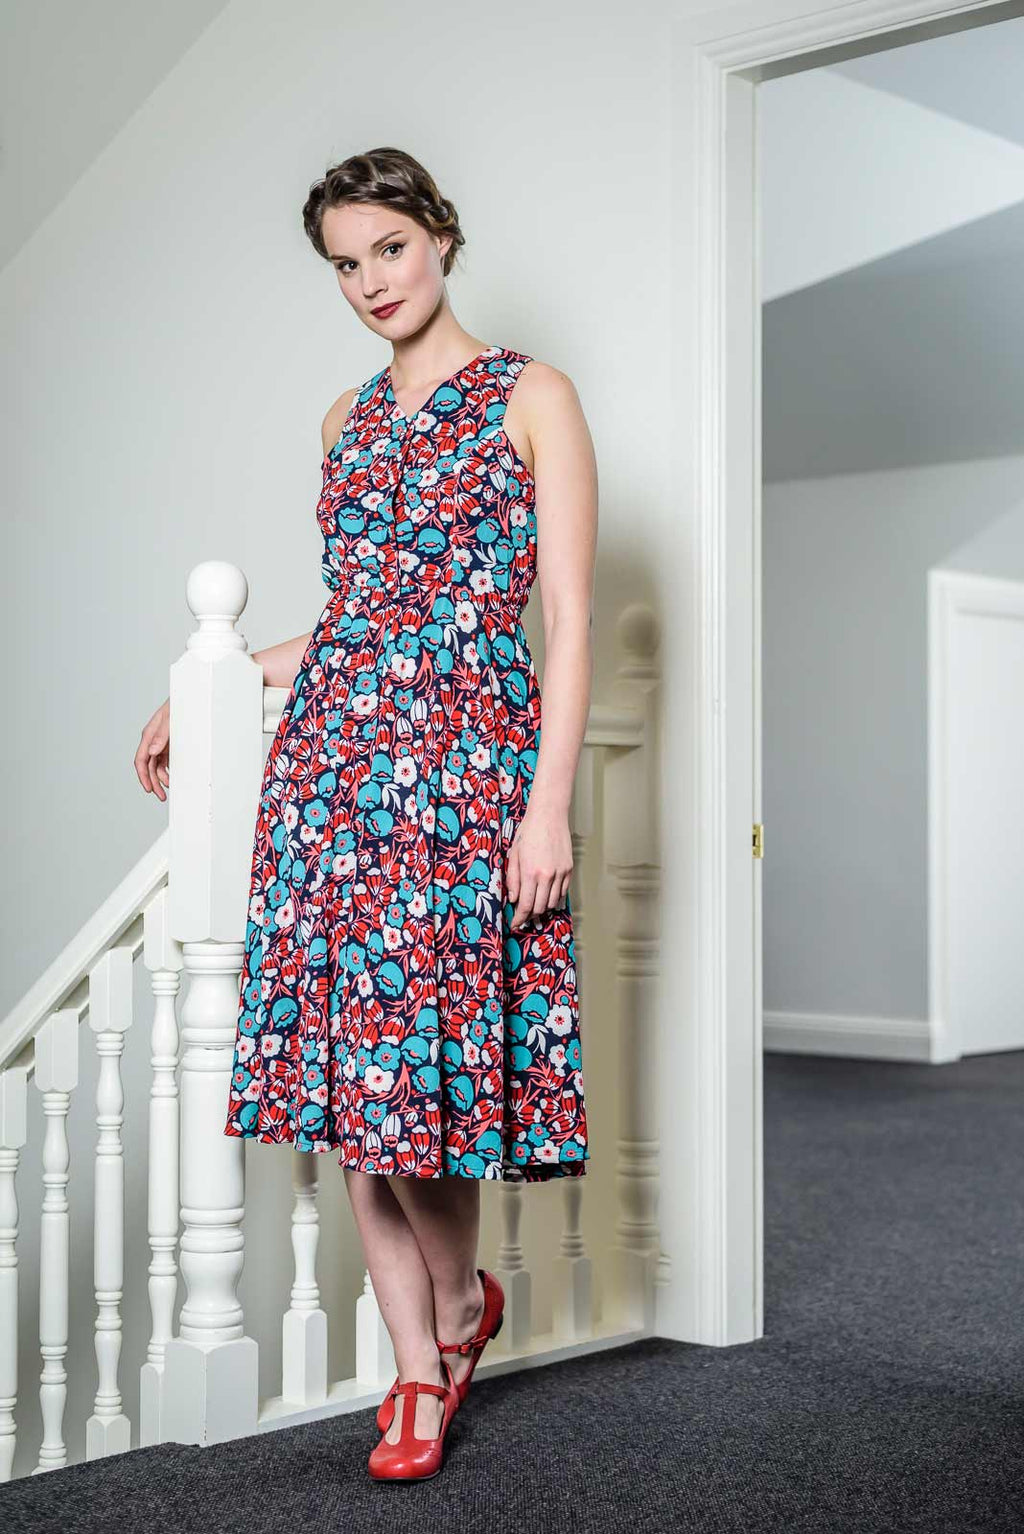 Isabella Red & Turquoise Dress Elise Design $179.00 Dresses